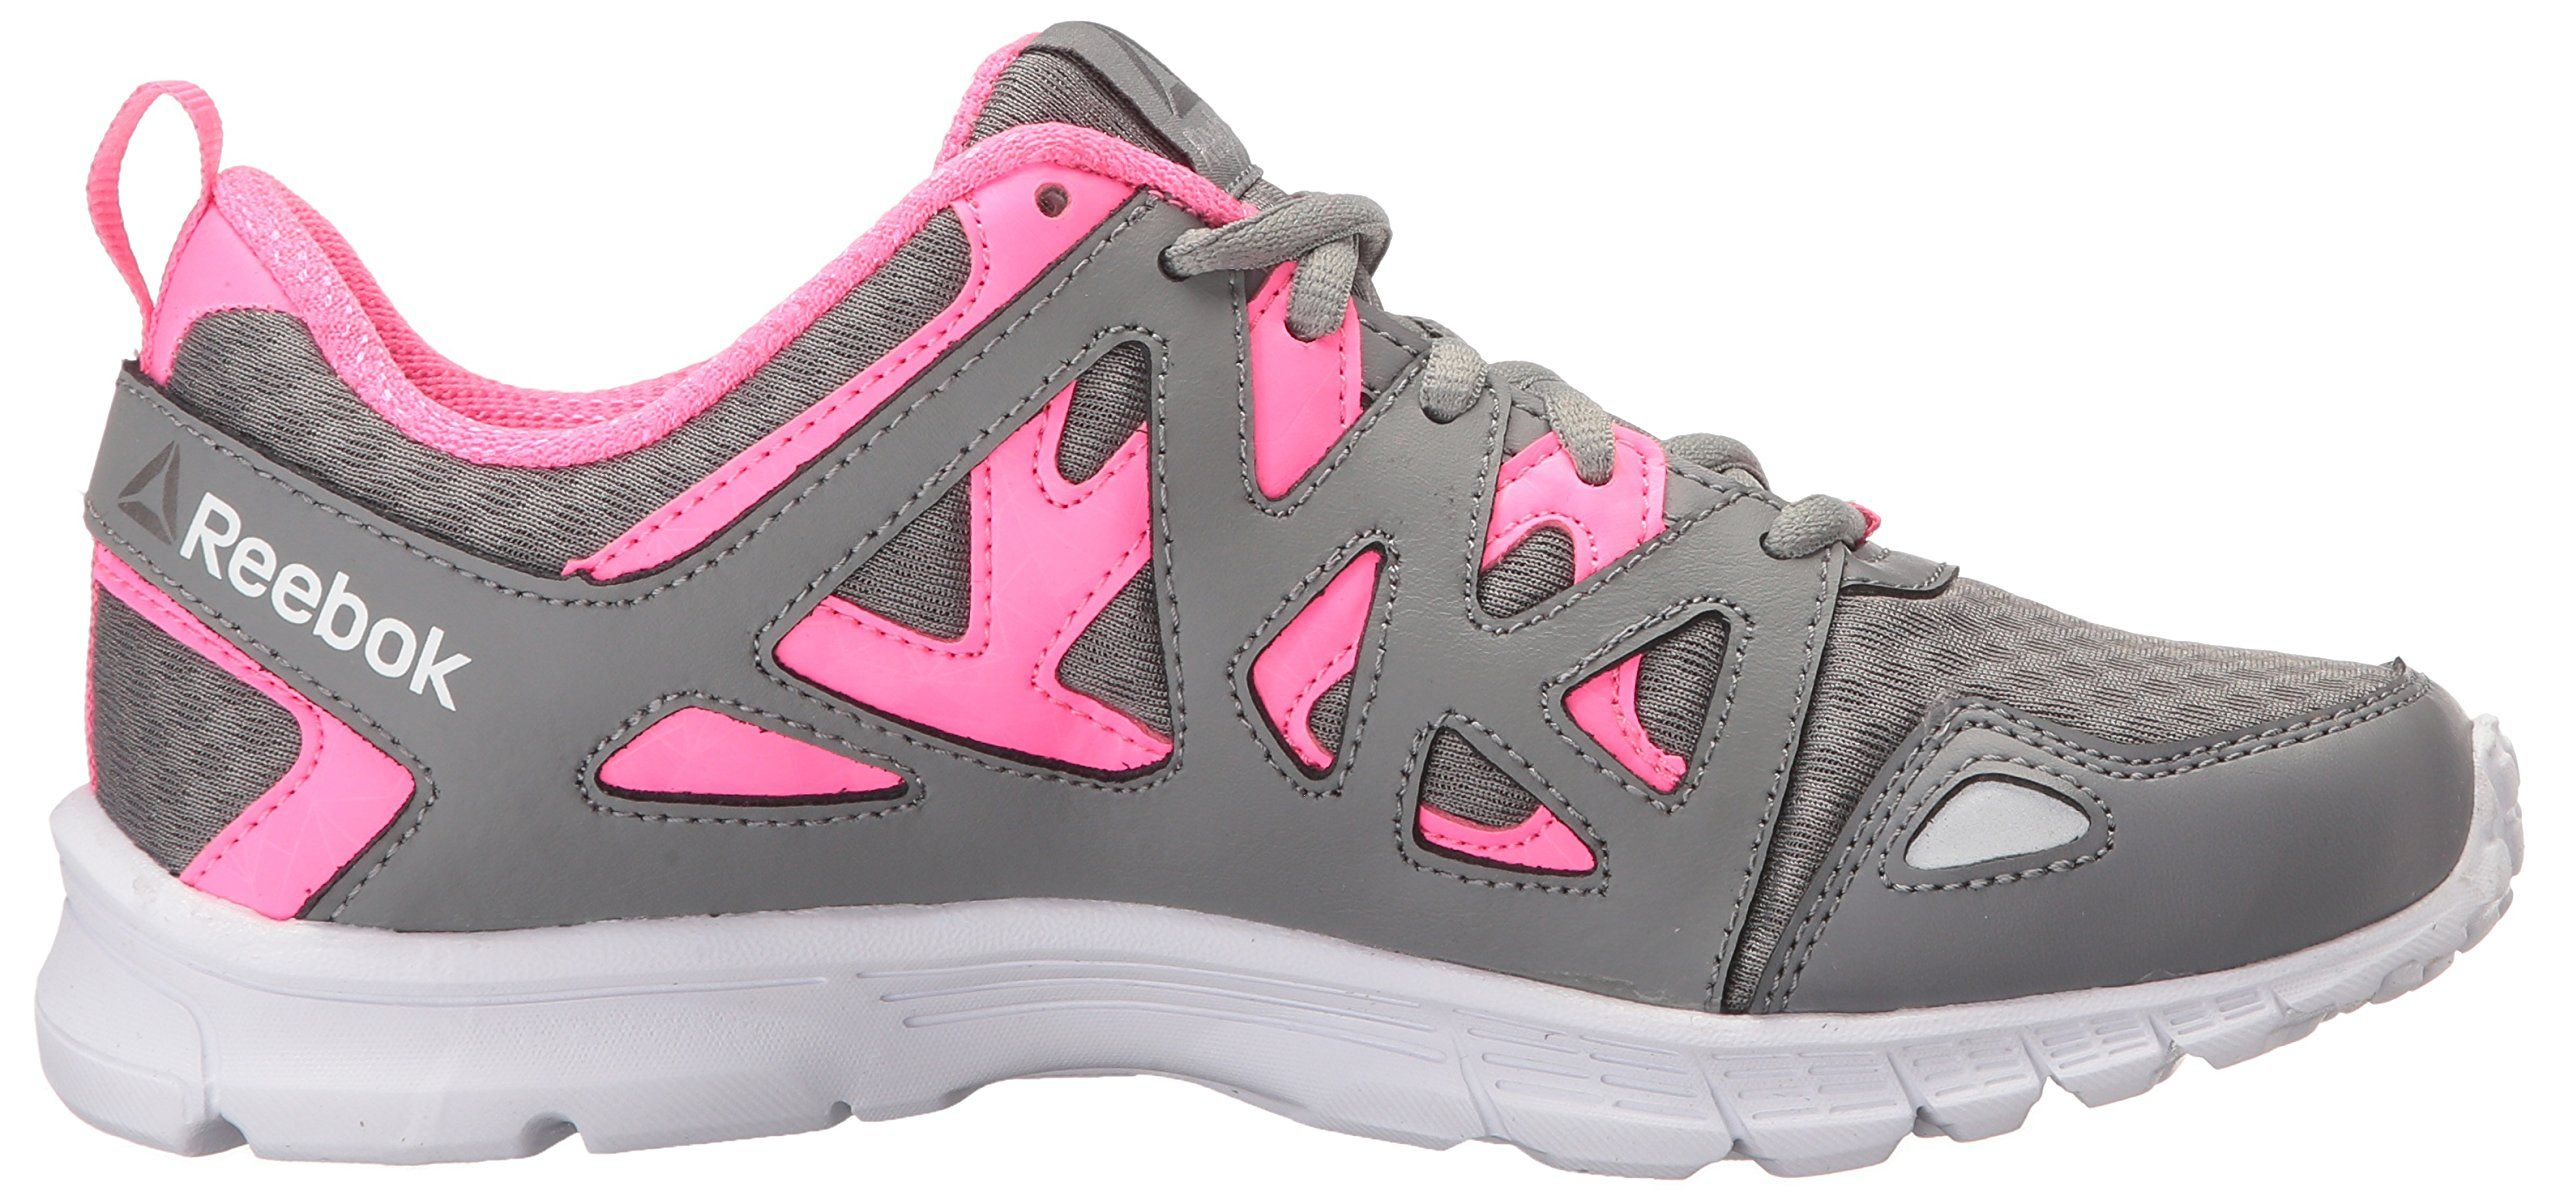 6a2498cb8 Reebok Womens Run Supreme 3.0 MT Track Shoe Flint Grey/Solar  Pink/Pewter/White 8.5 M US ** Visit the image link more details. (This is  an affiliate link) # ...